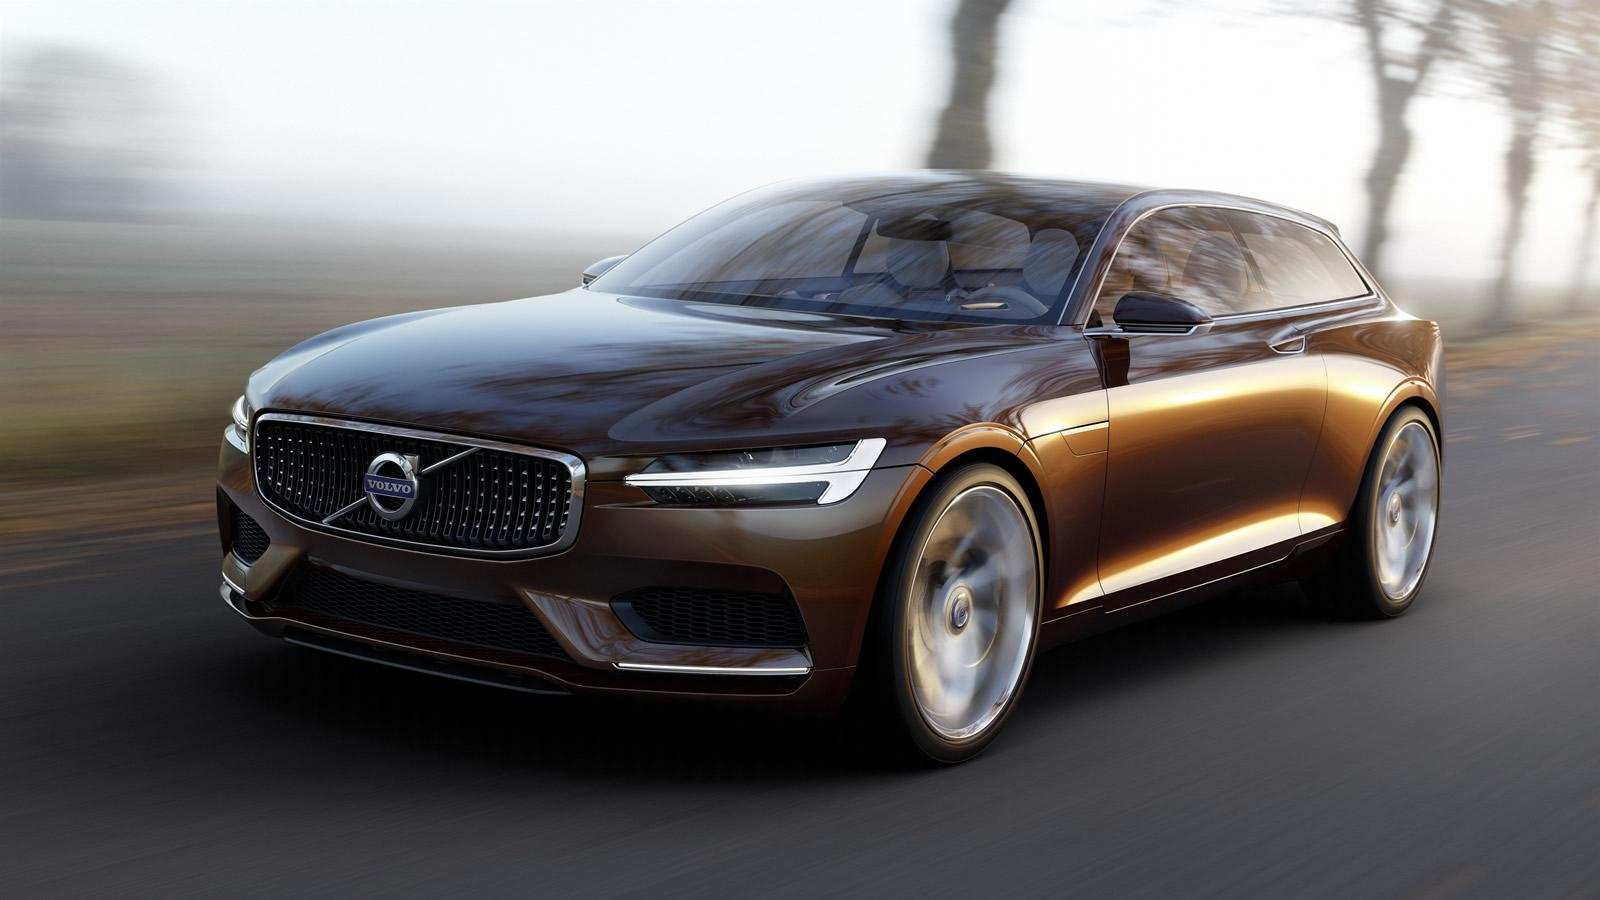 73 All New Volvo 2020 Promise Images with Volvo 2020 Promise